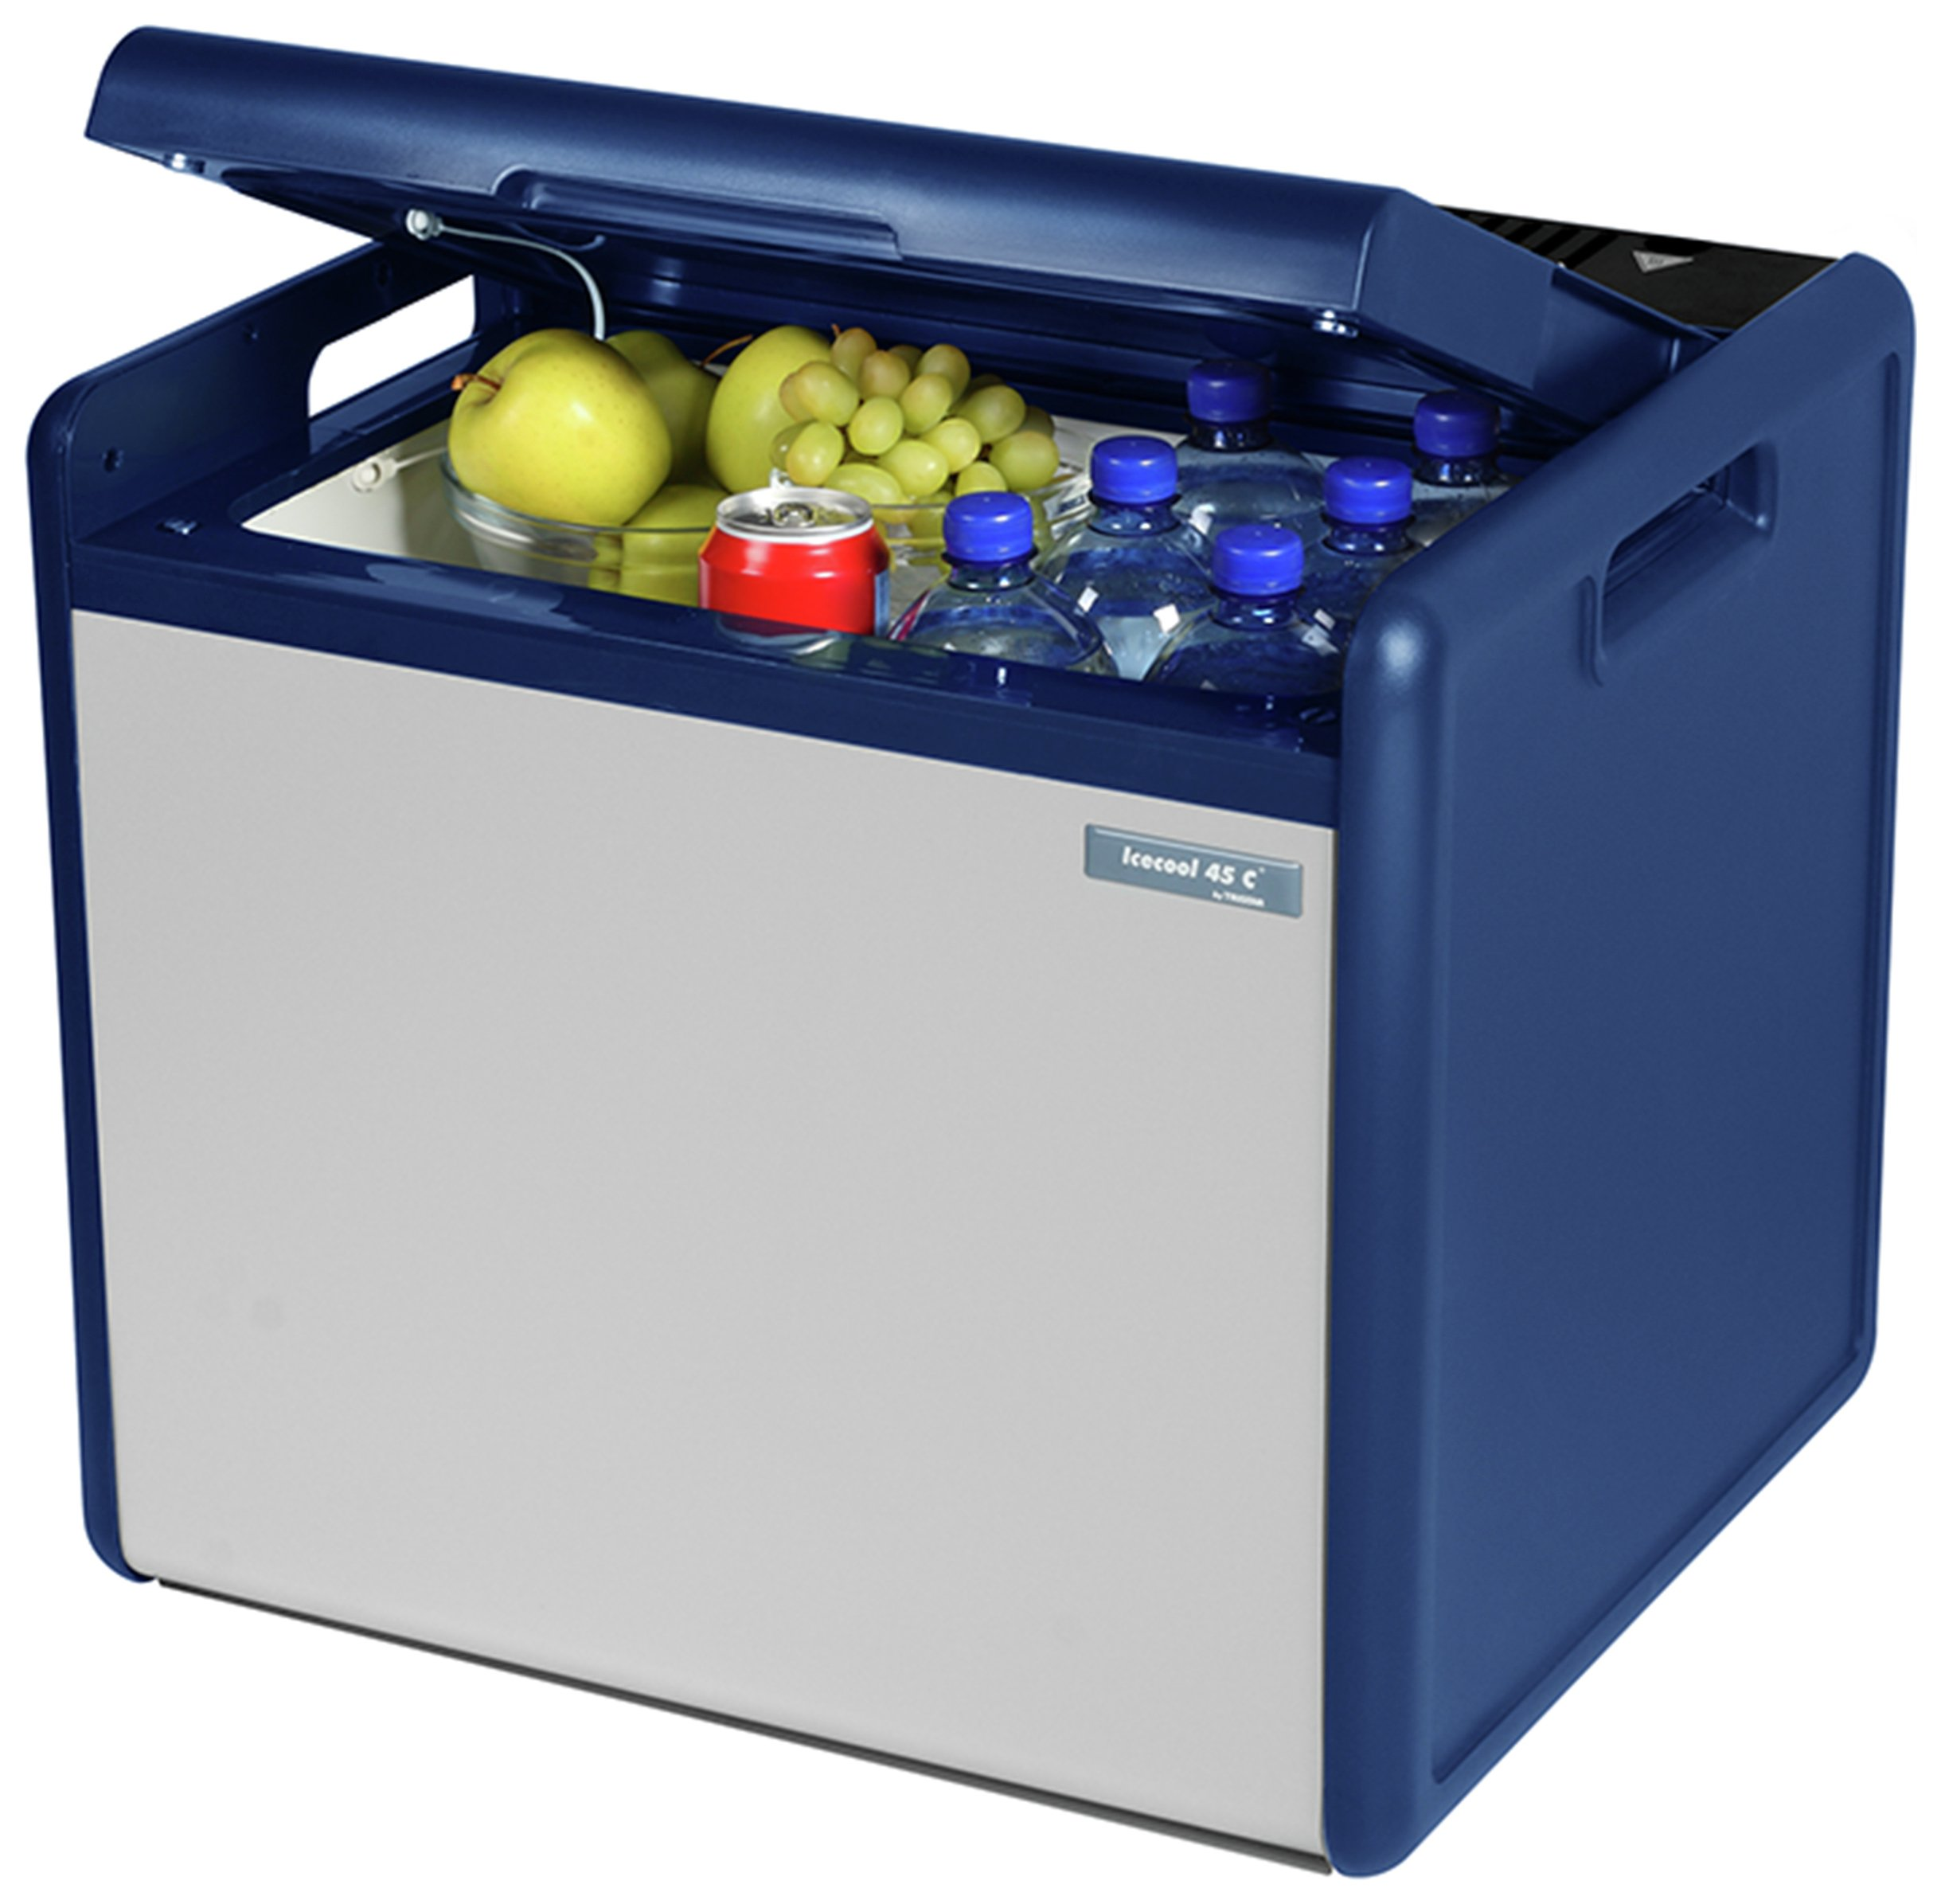 Cool Box buy tristar kb7245 41 litre cool box at argos.co.uk - your online